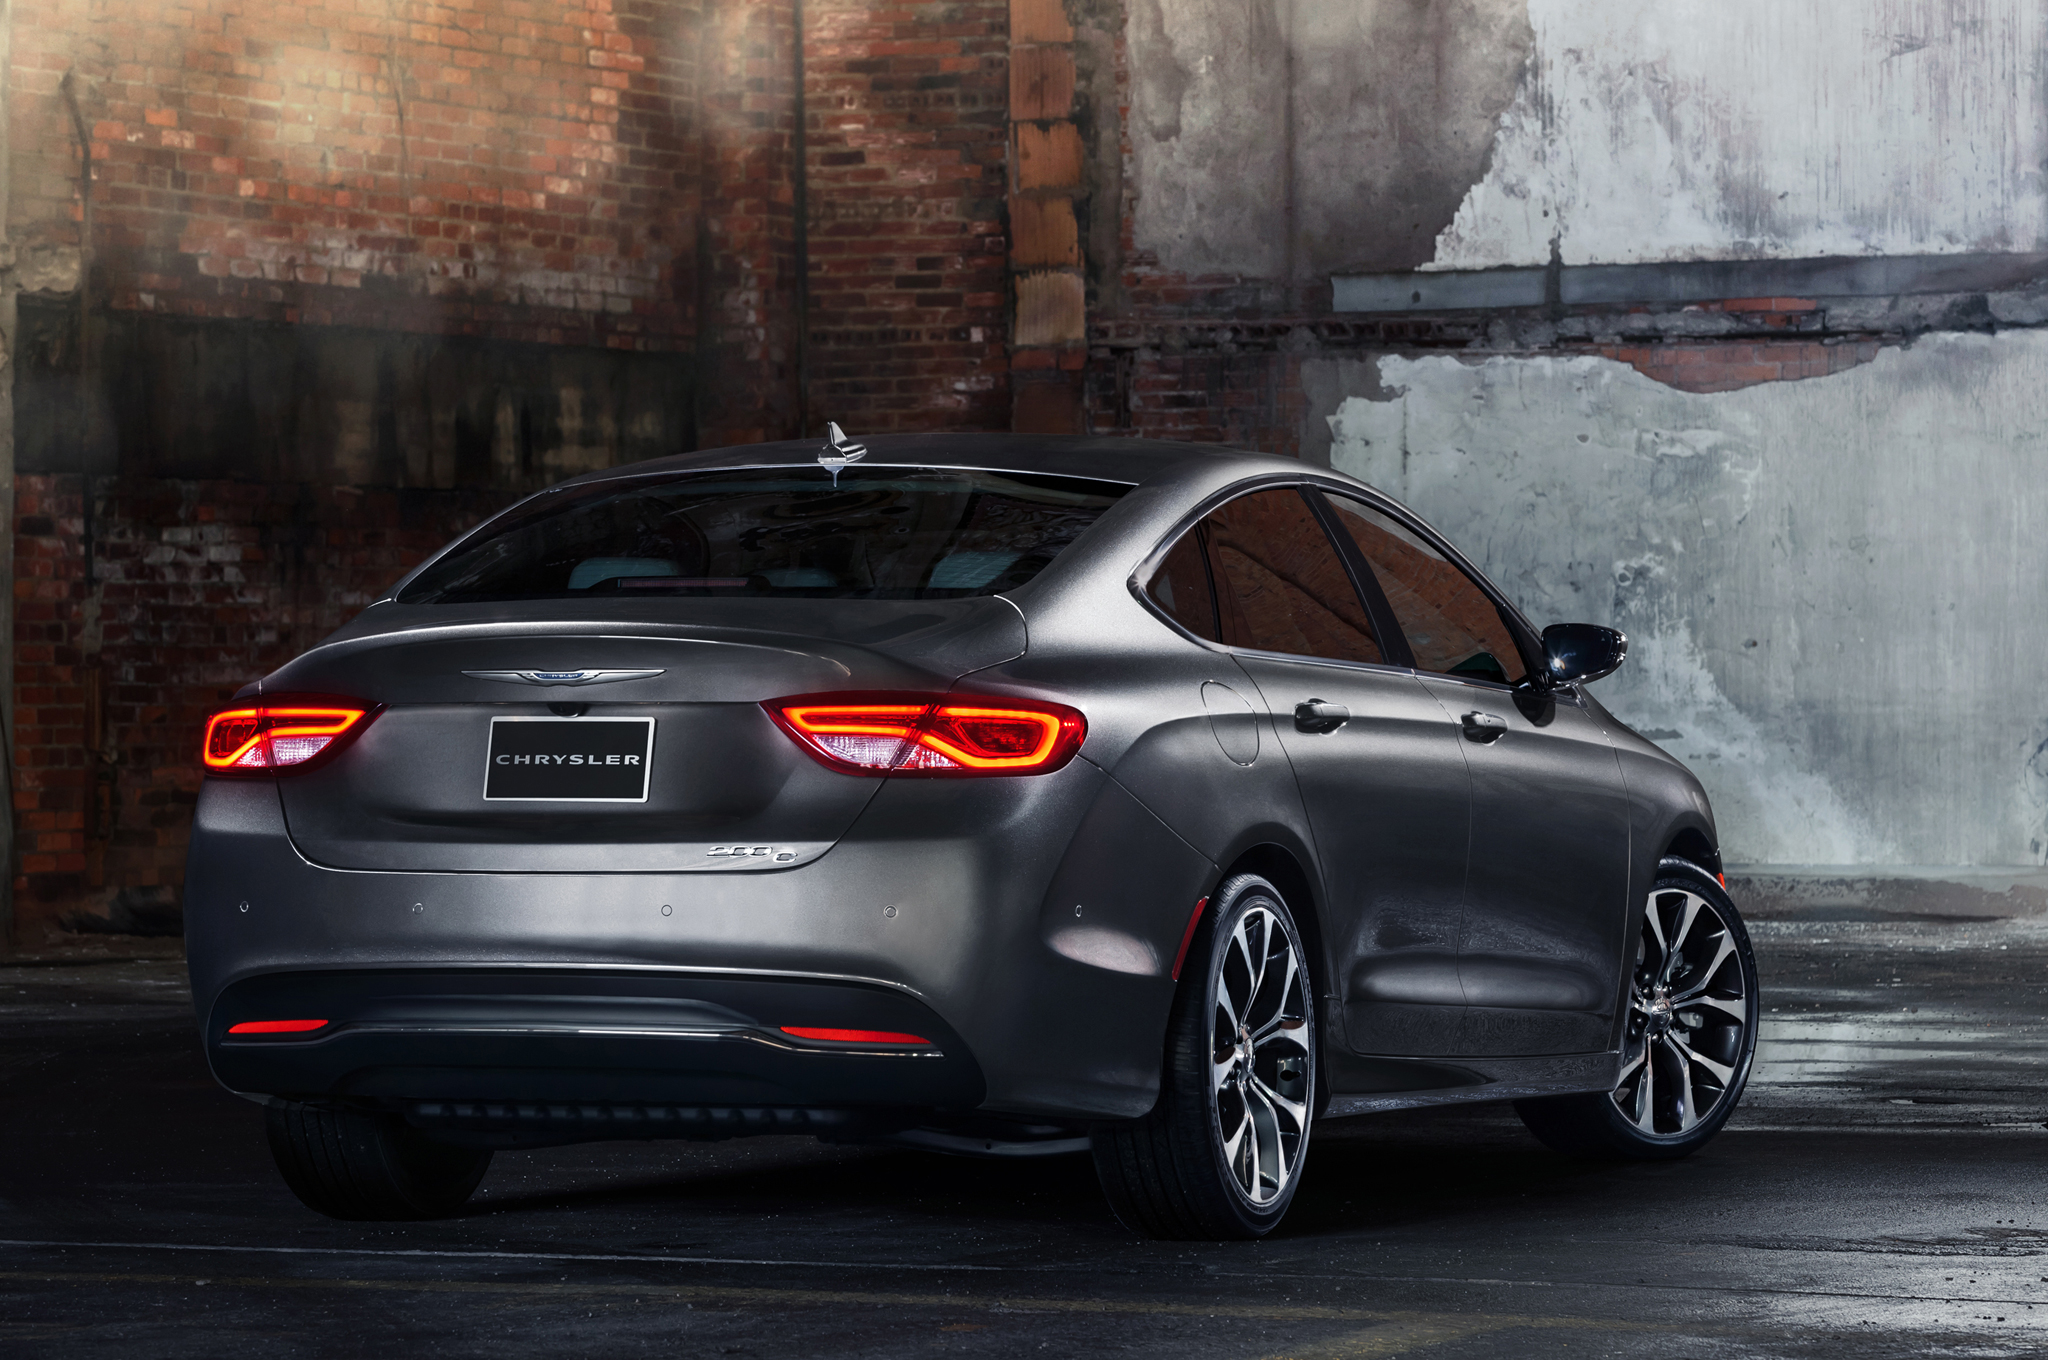 2015 Chrysler 200 Rear Exterior